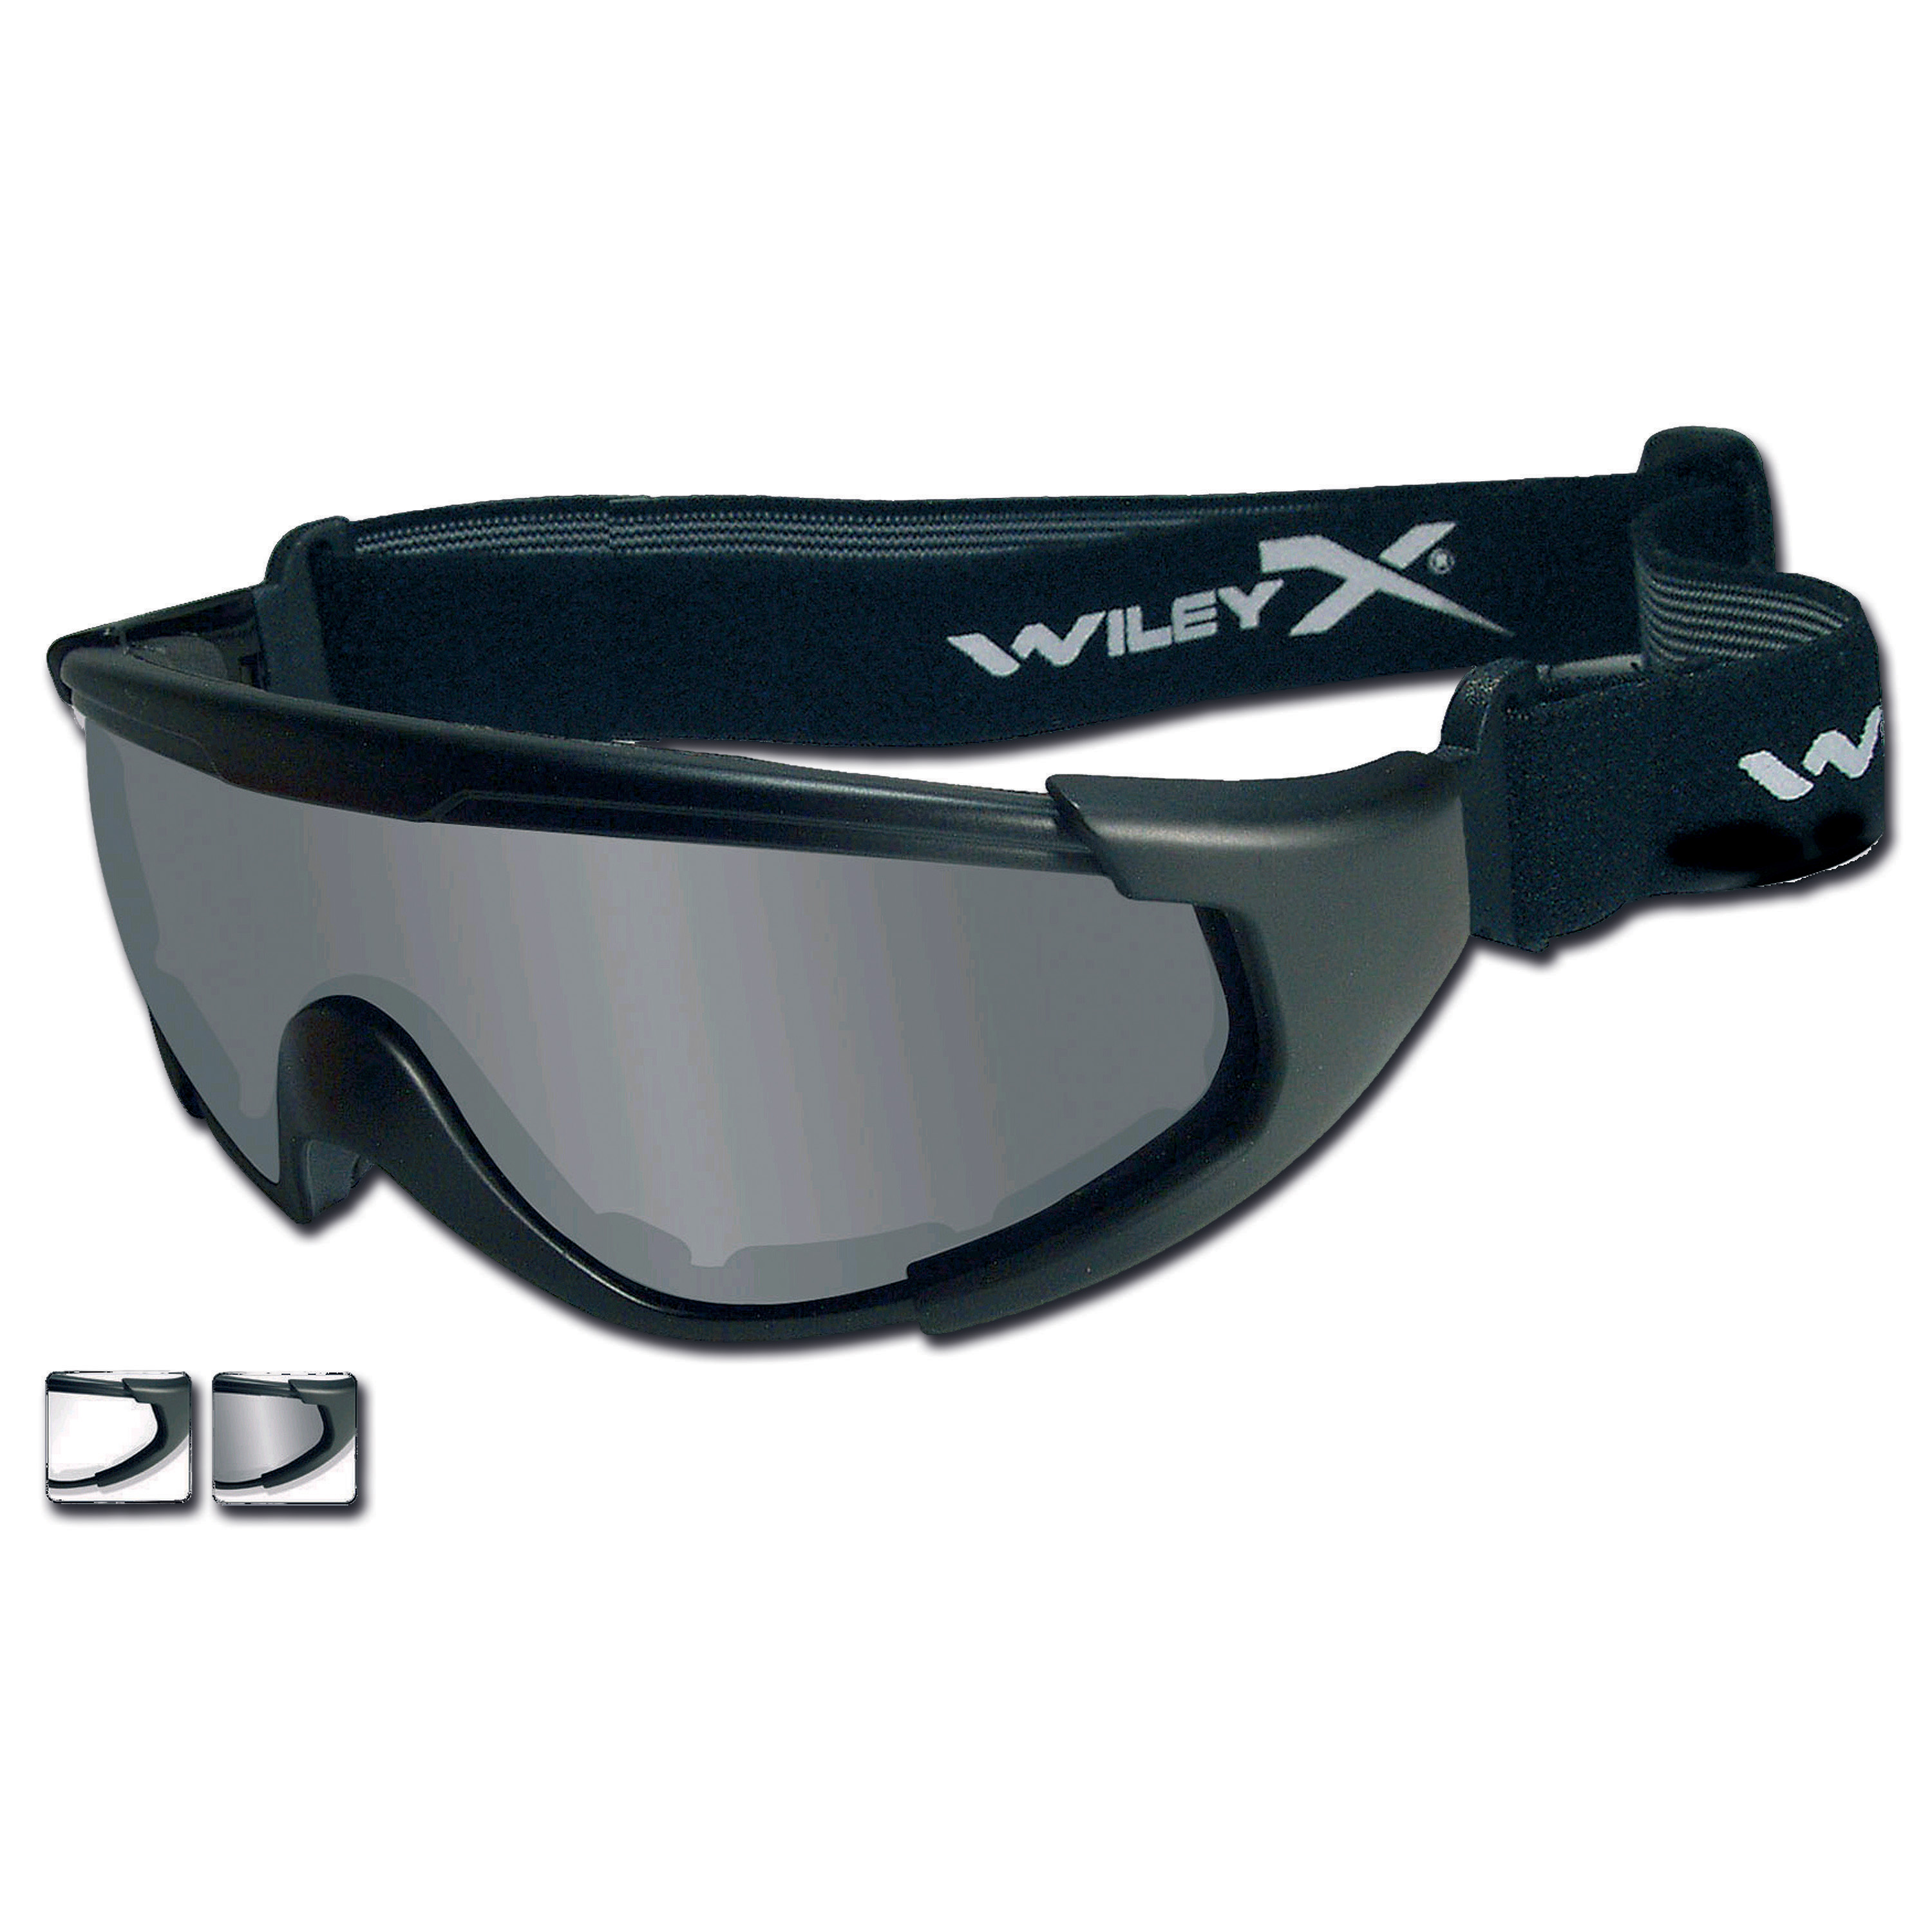 Goggles Wiley X CQC